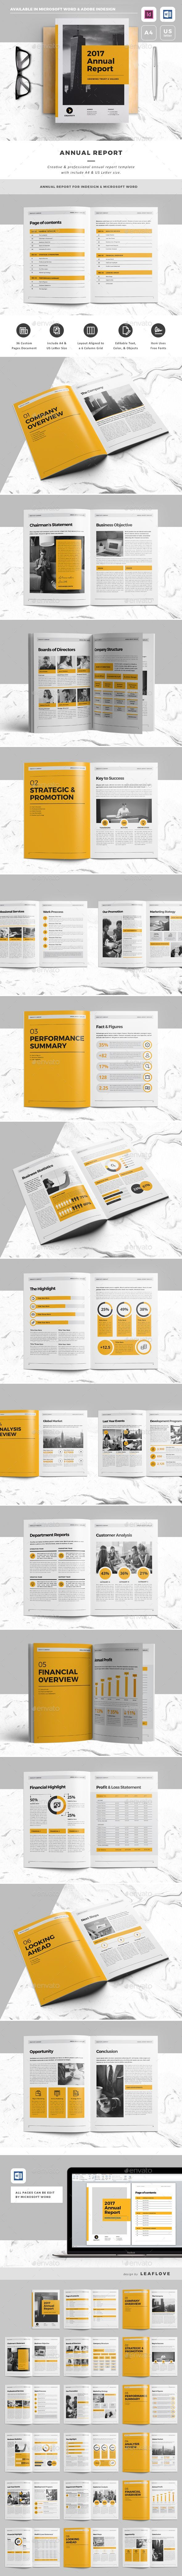 Annual Report Brochure Template InDesign INDD - 36 Pages, A4 & US Letter